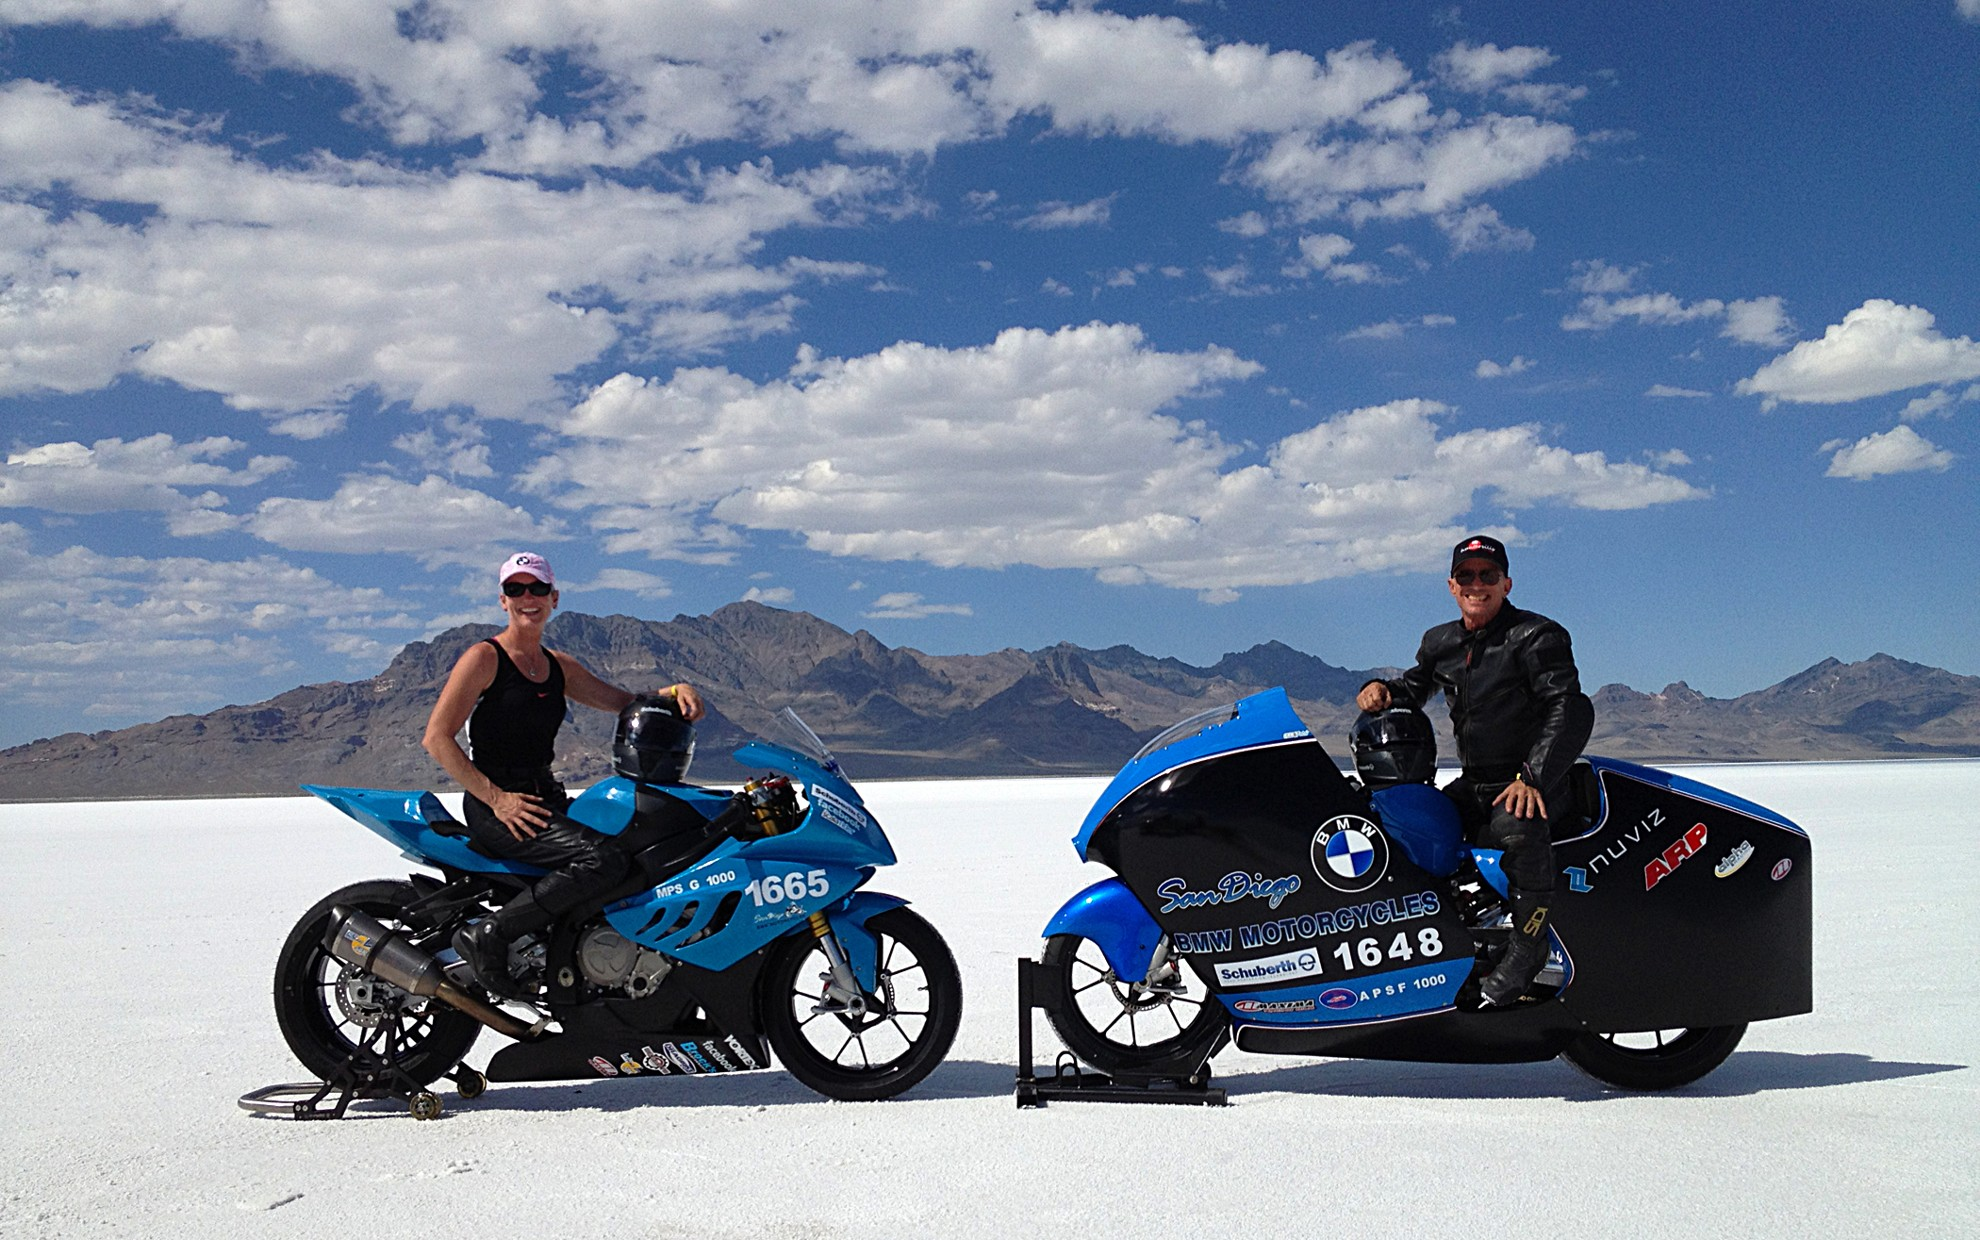 Bmw Motorcycle S 1000 Rr Tops 224 Mph